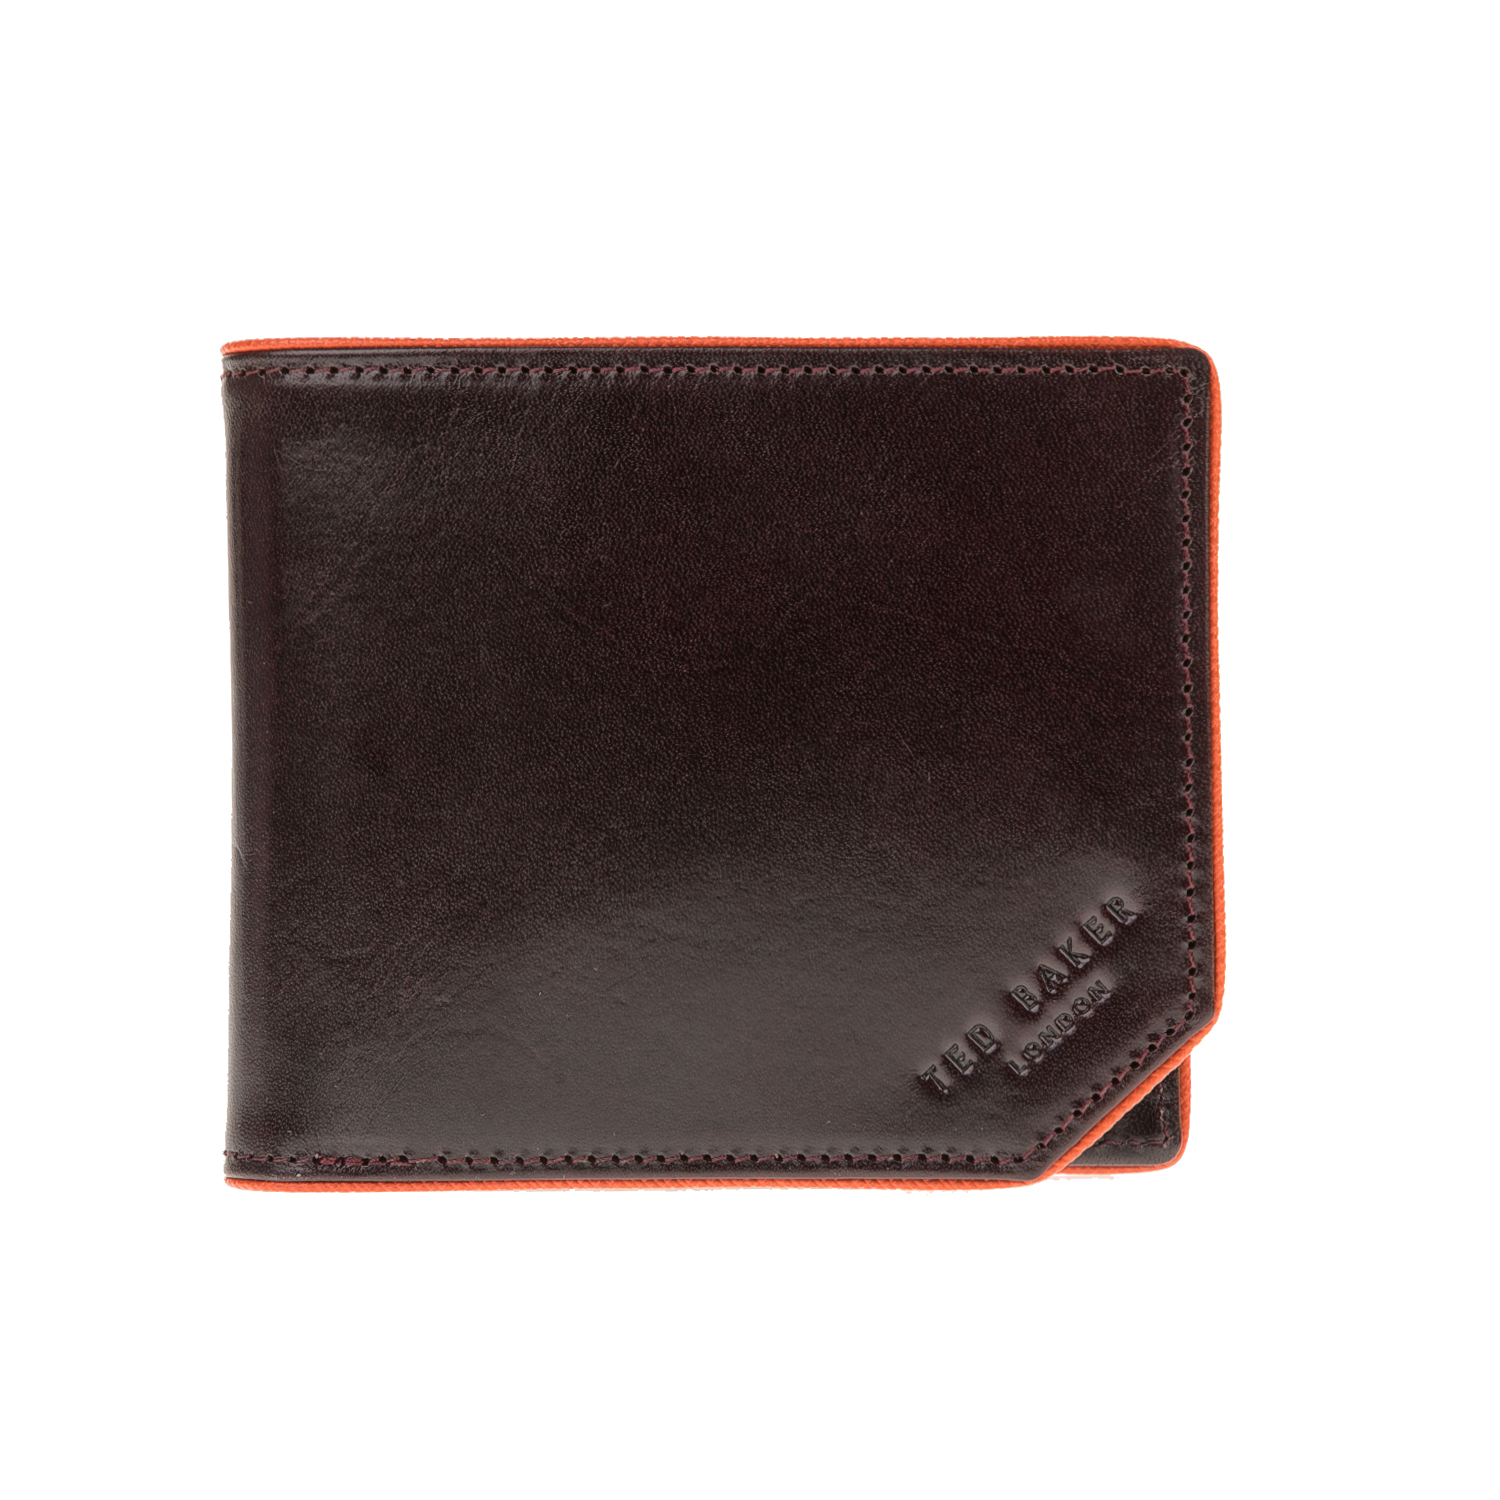 d6b5841218 TED BAKER - Ανδρικό πορτοφόλι HUMM SAFFIANO PIPED EDGE BIFOLD καφέ